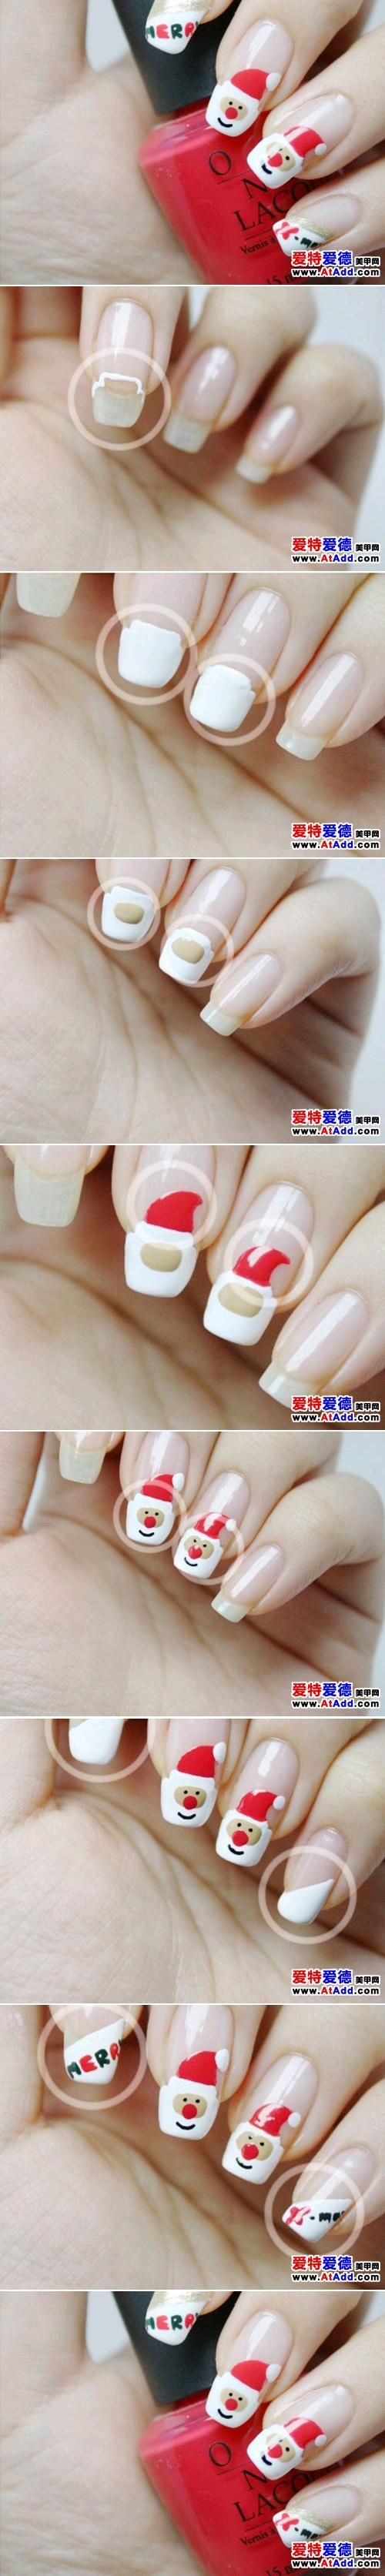 15 Amazing And Useful Nails Tutorials, DIY Santa Claus Nail Design